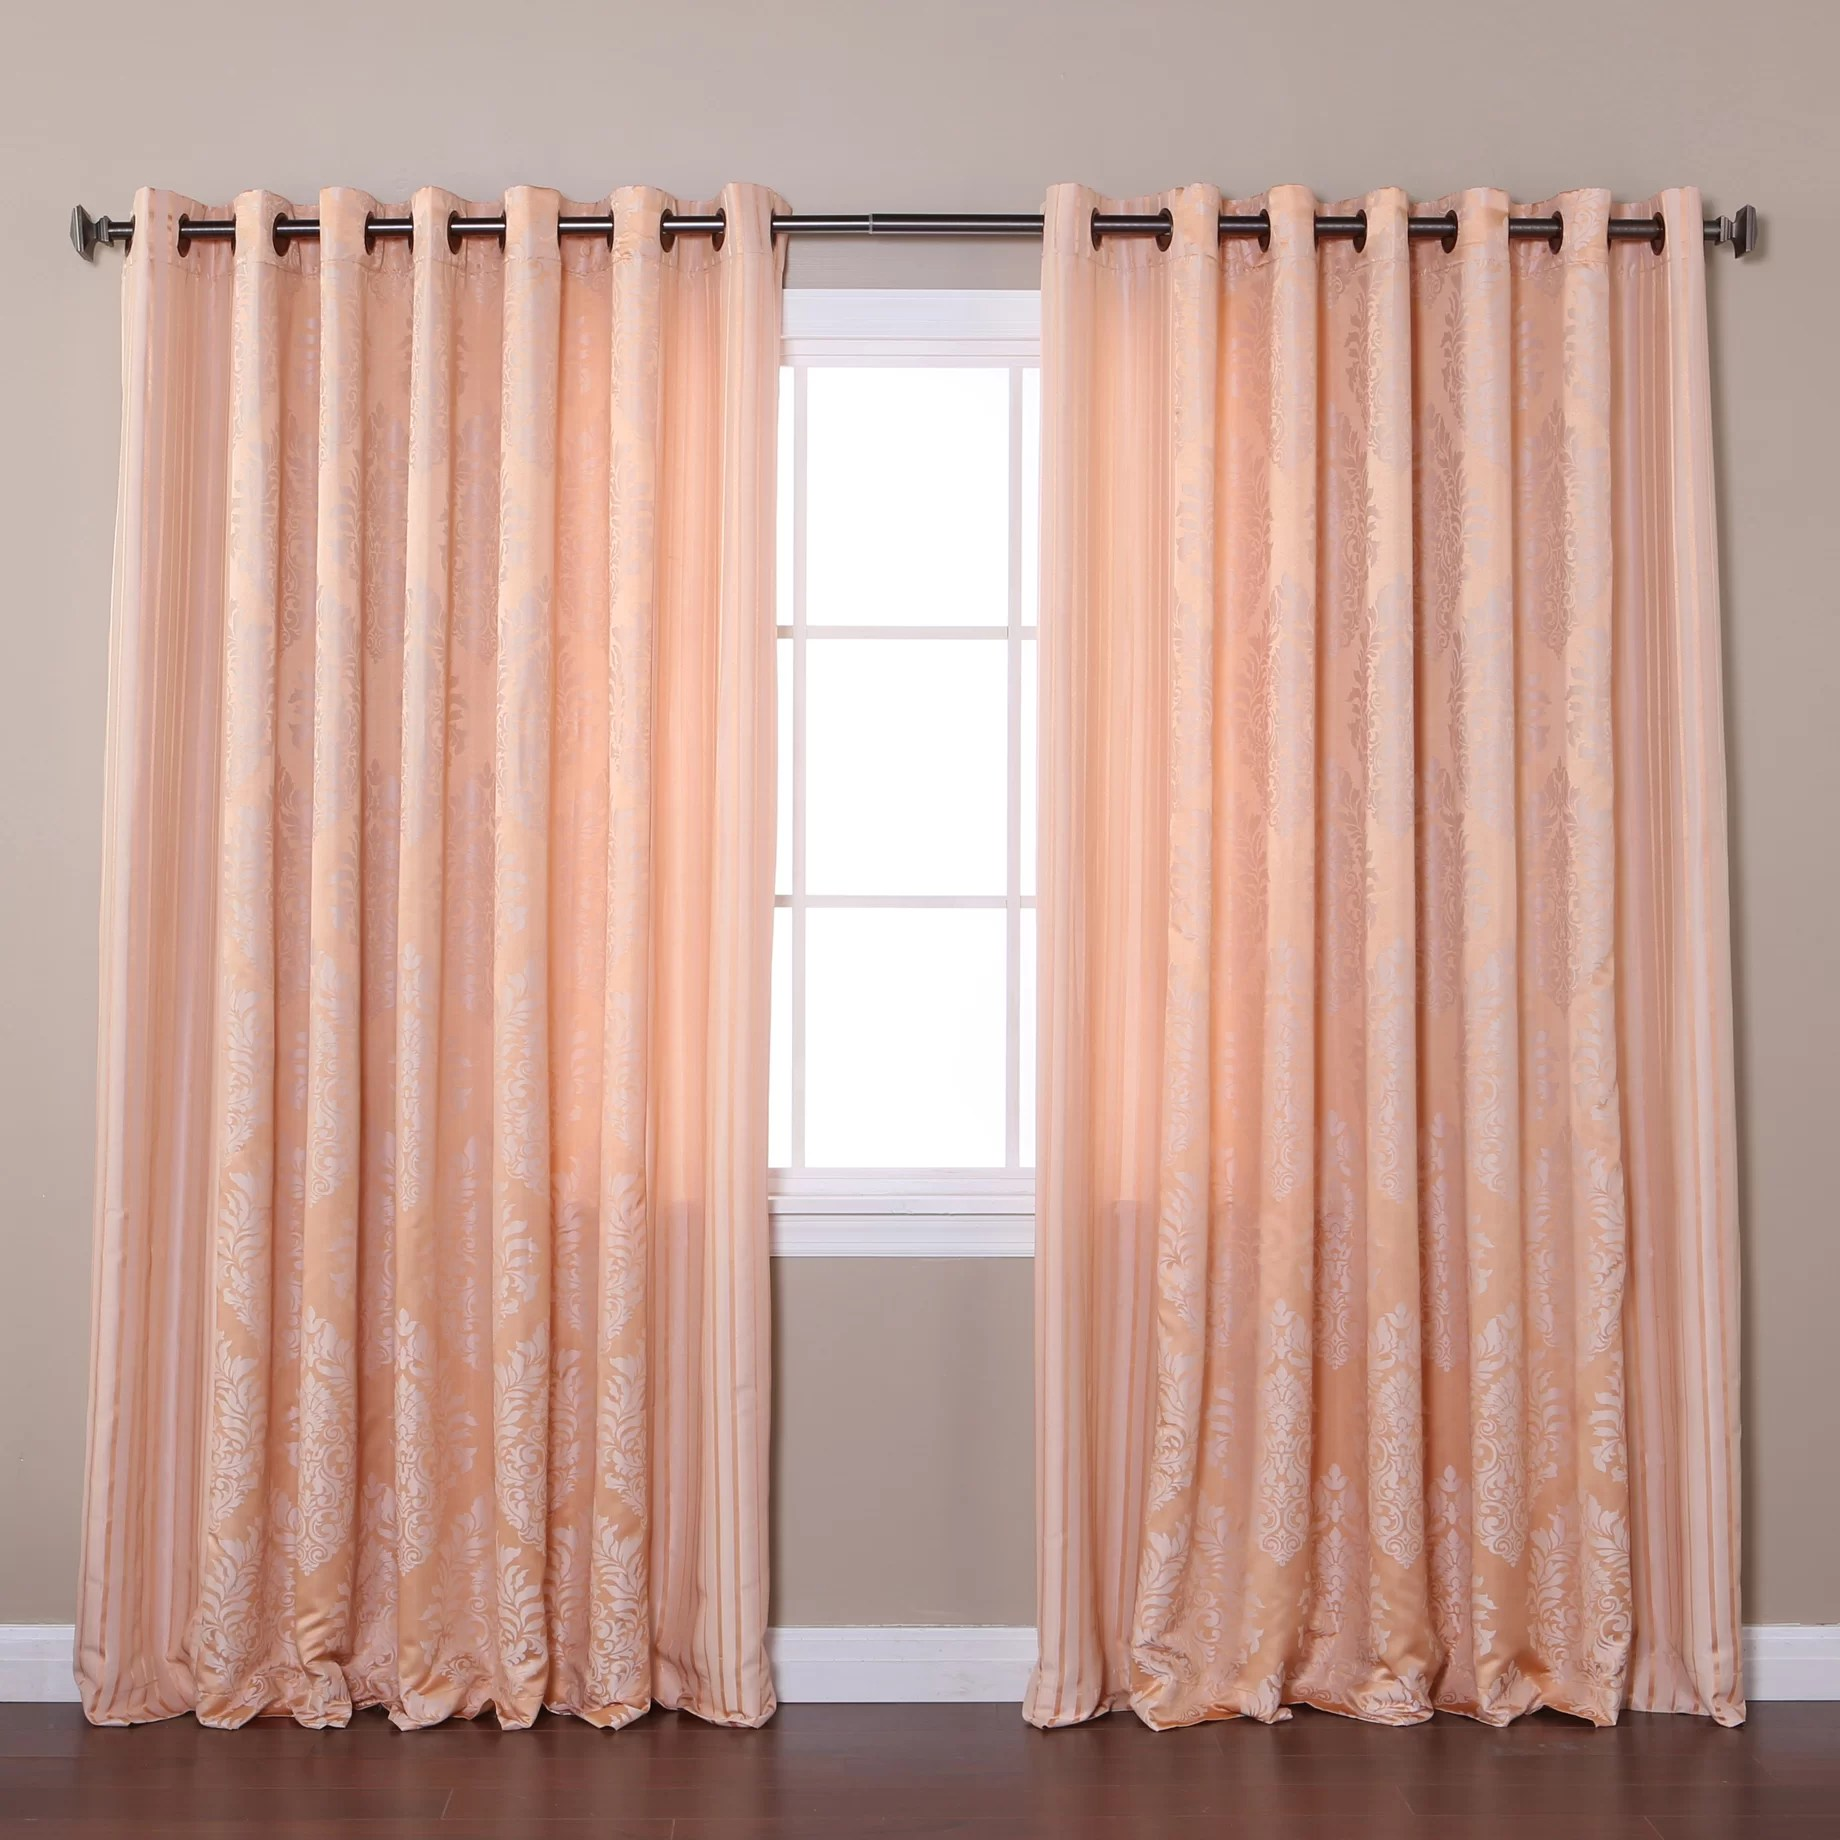 Best Home Fashion, Inc Wide Width Damask Jacquard Grommet